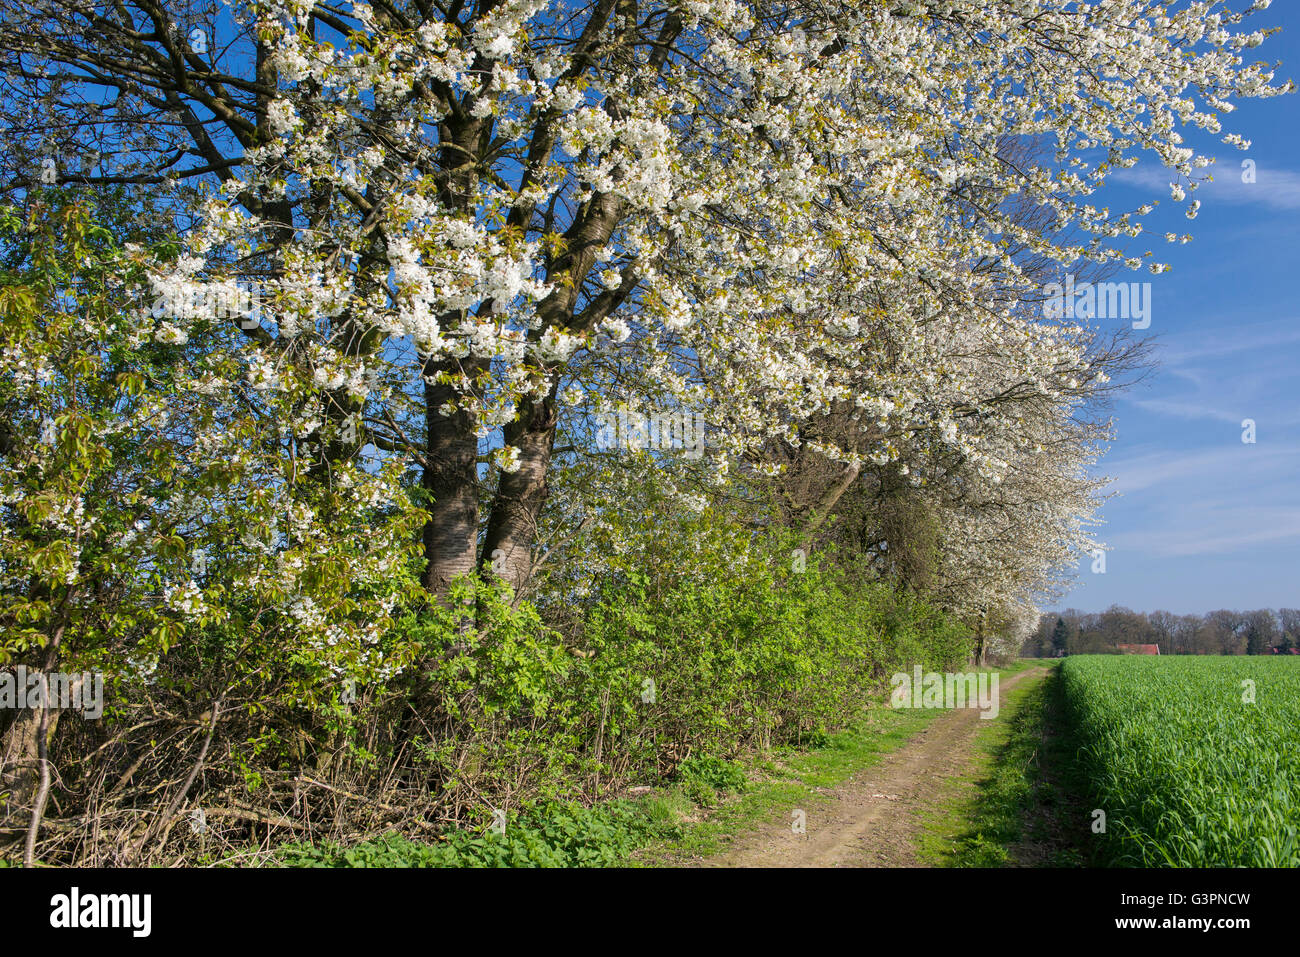 blooming cherry tree at a hedge bank, oldenburg münsterland, niedersachsen, germany Stock Photo